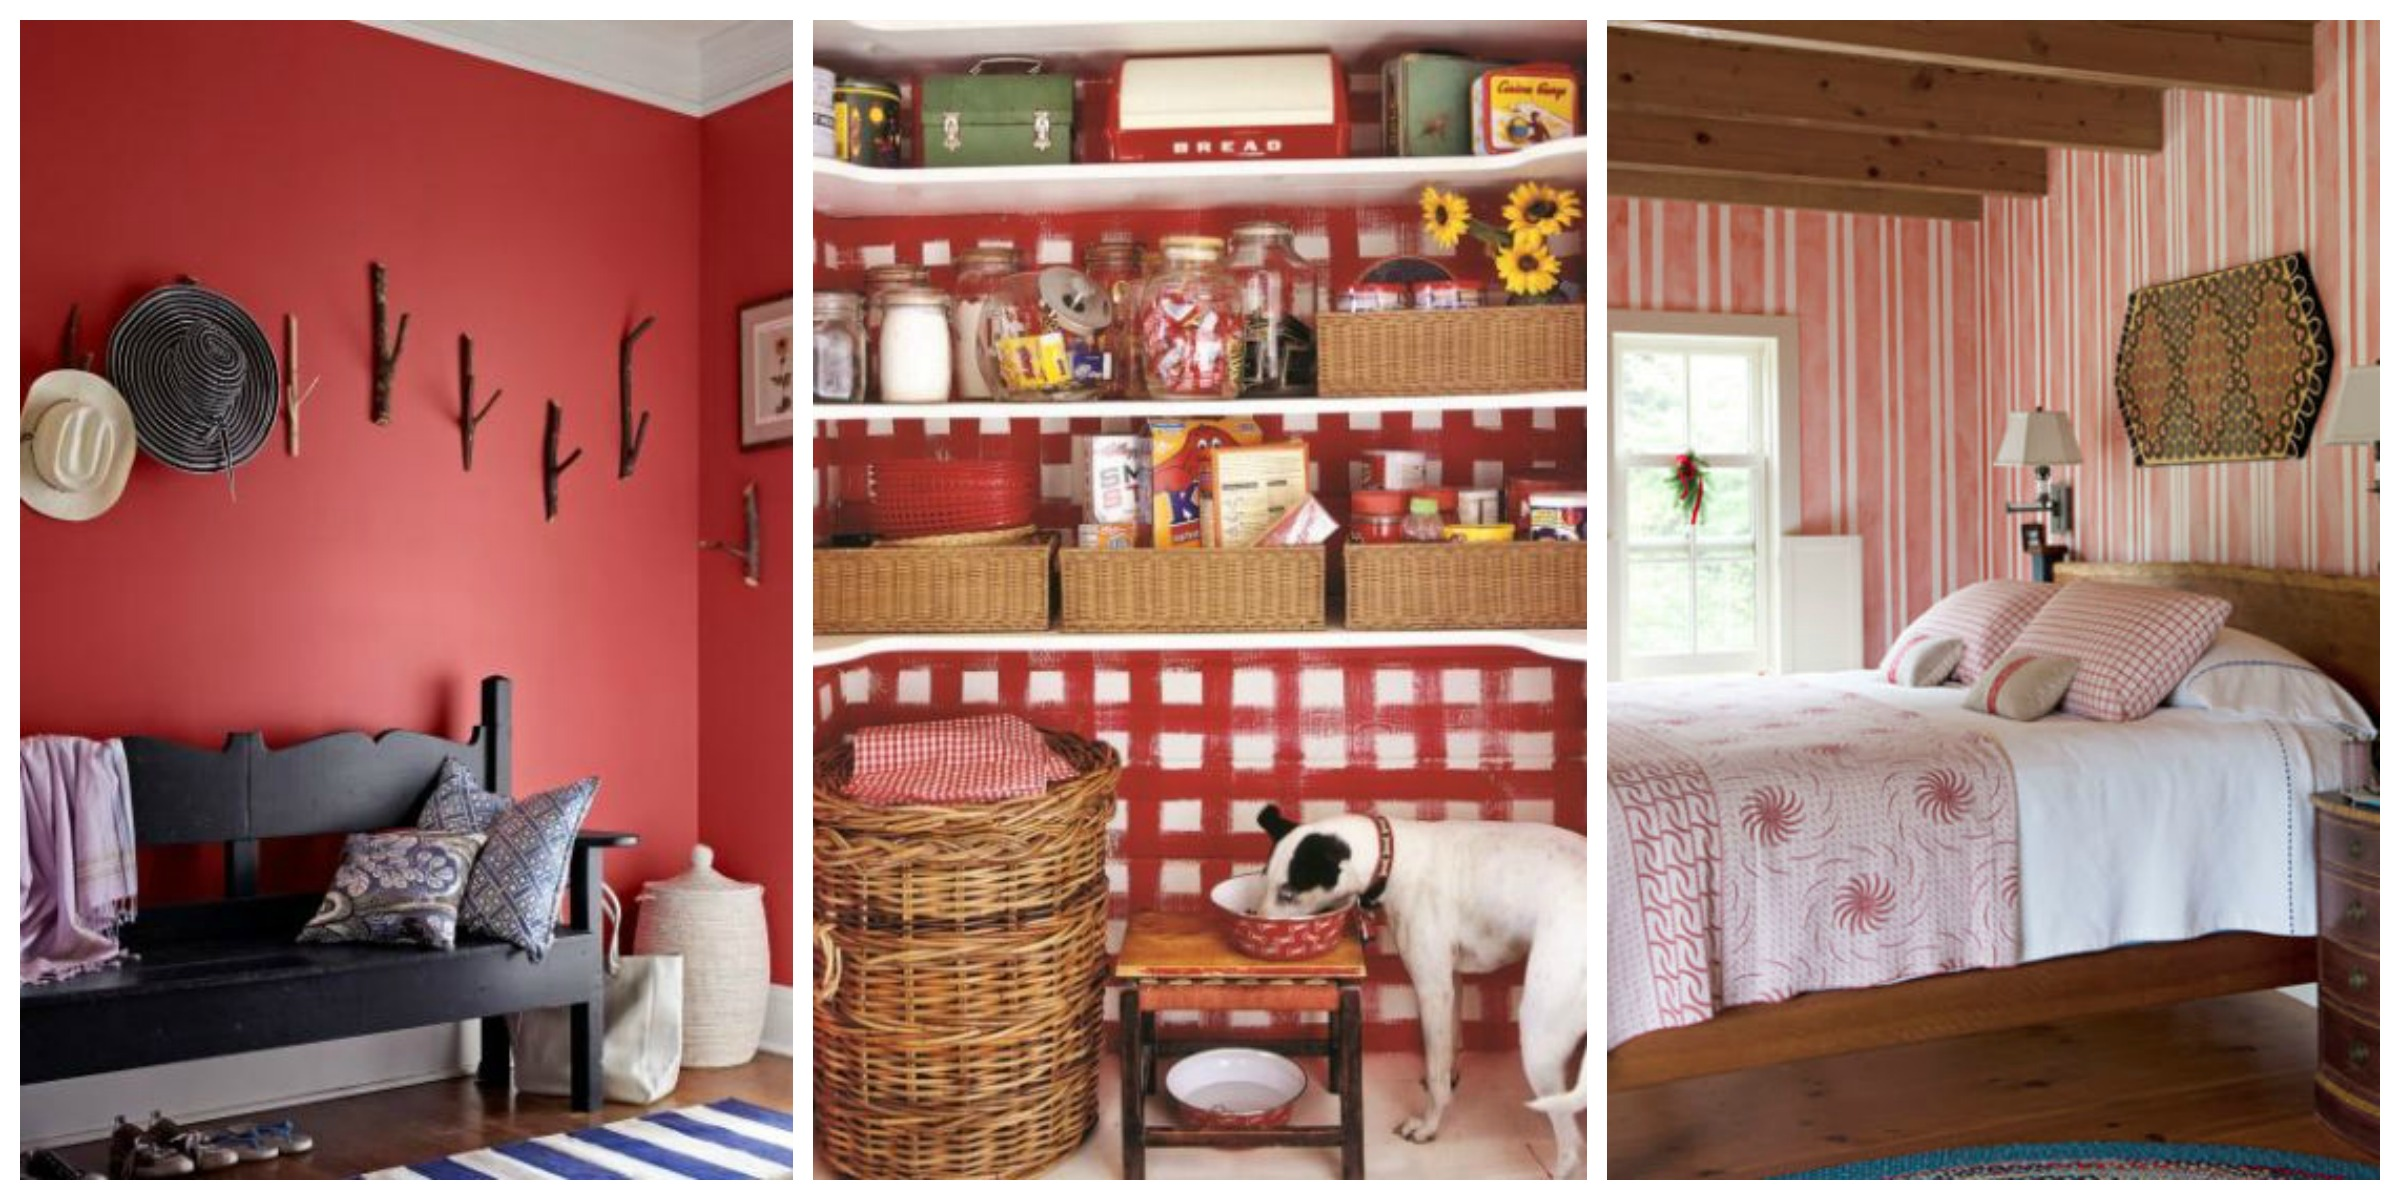 Best Decorating With Red Ideas For Red Rooms And Home Decor This Month